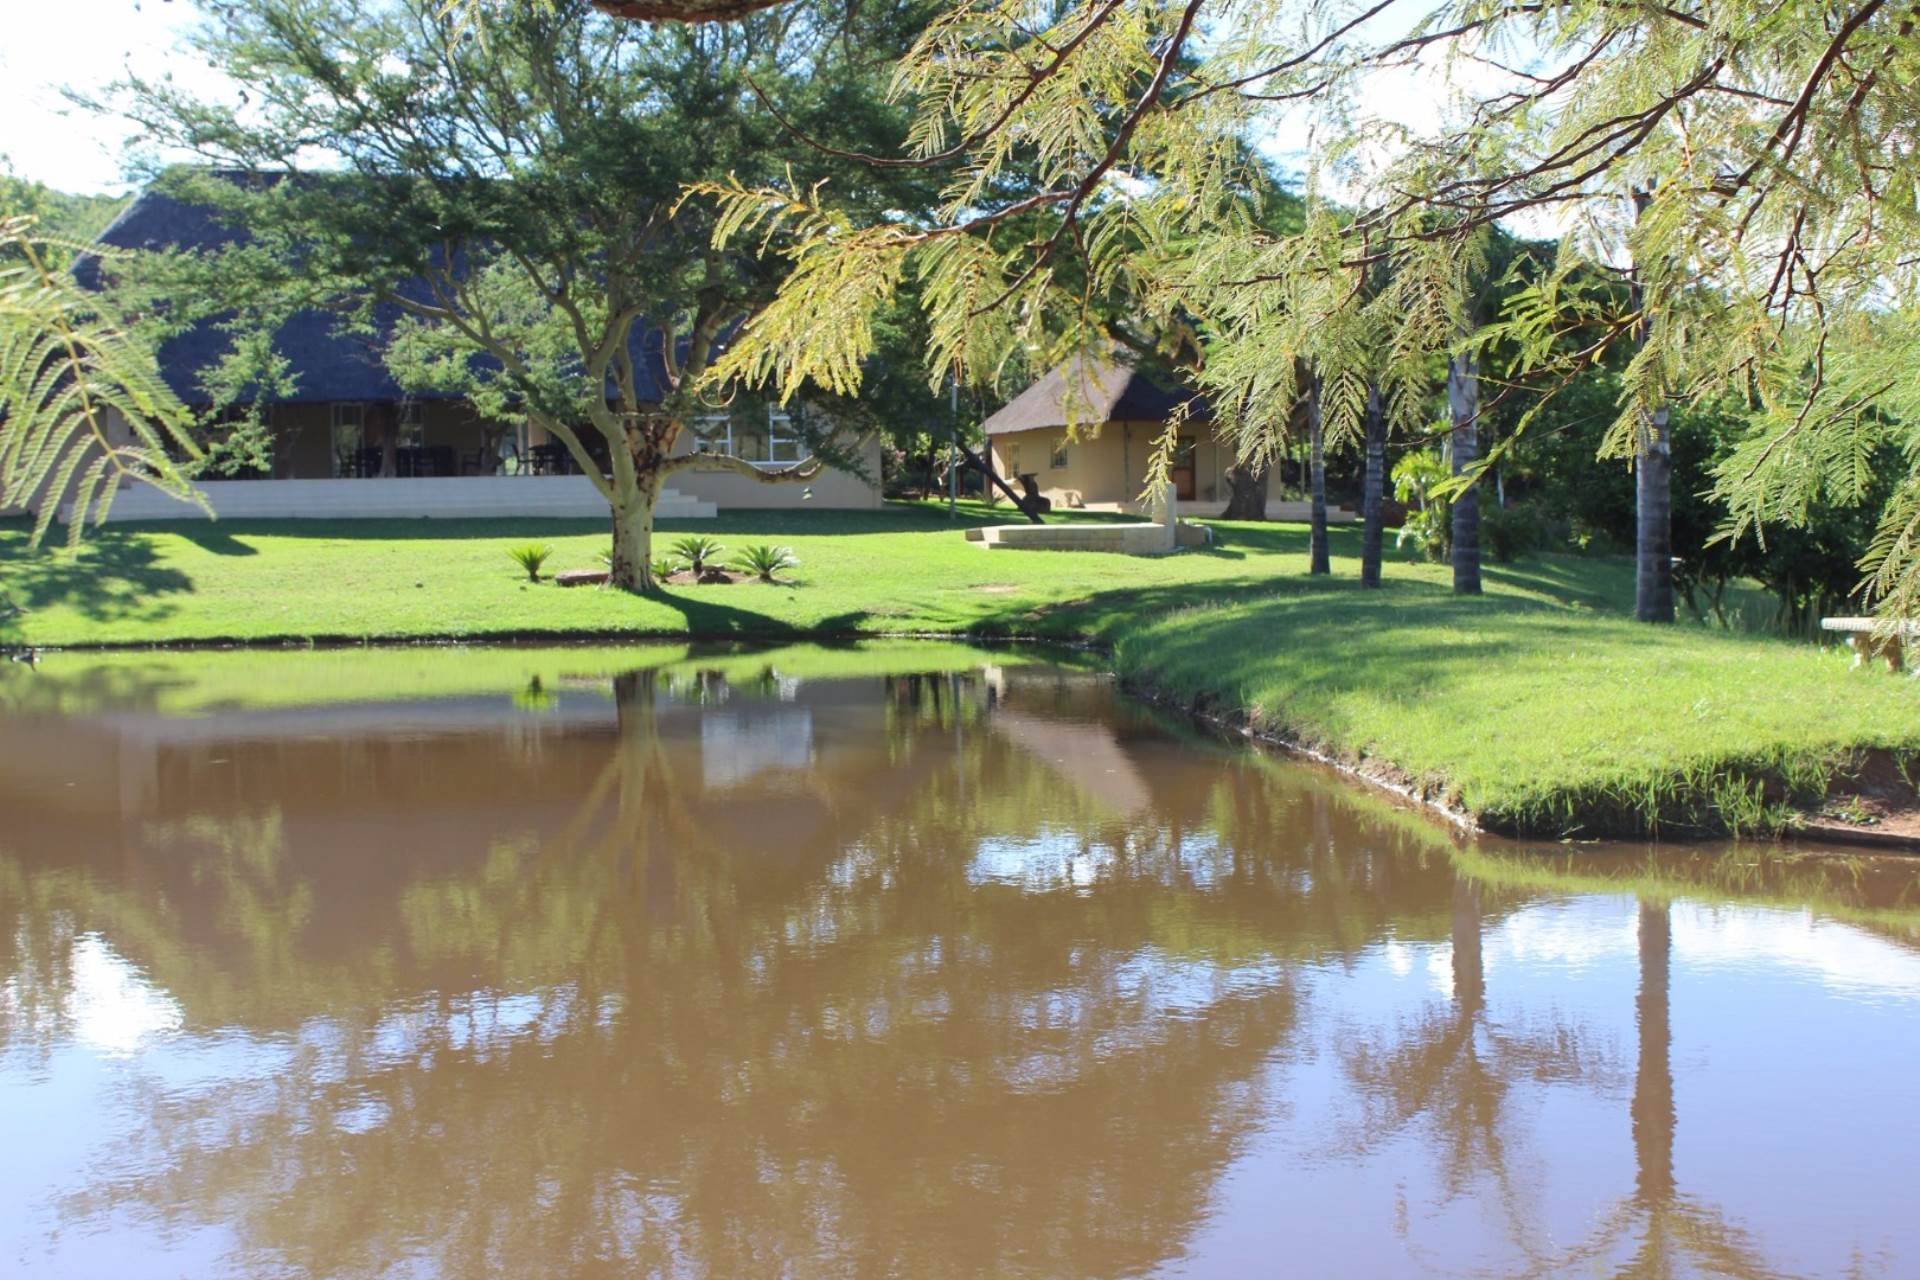 7 BedroomFarm For Sale In Vaalwater